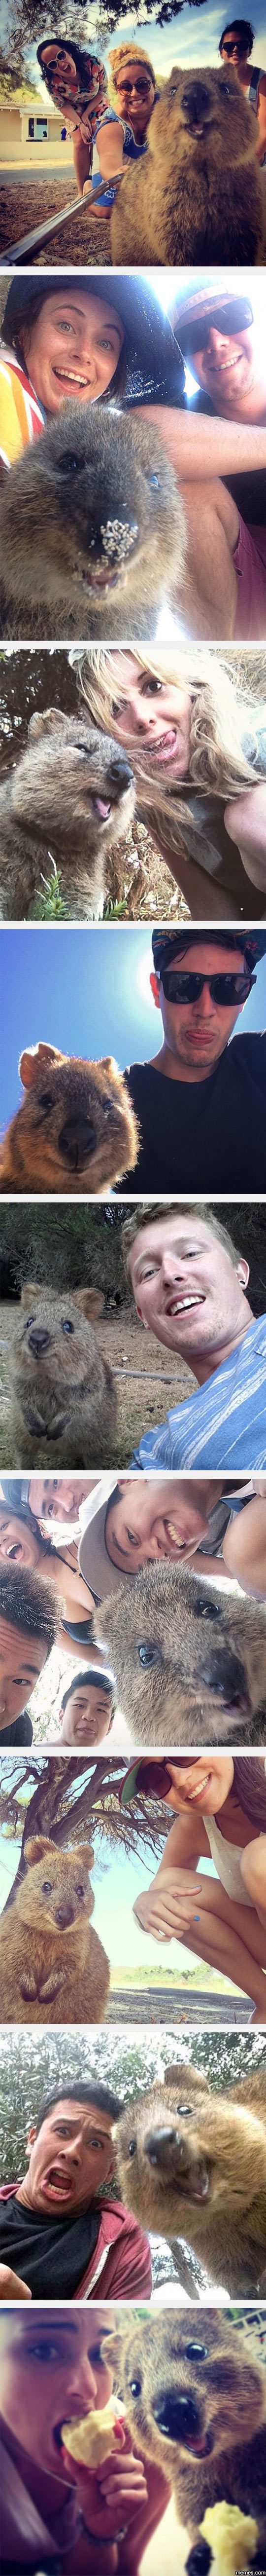 Wonderful Quokka Selfies